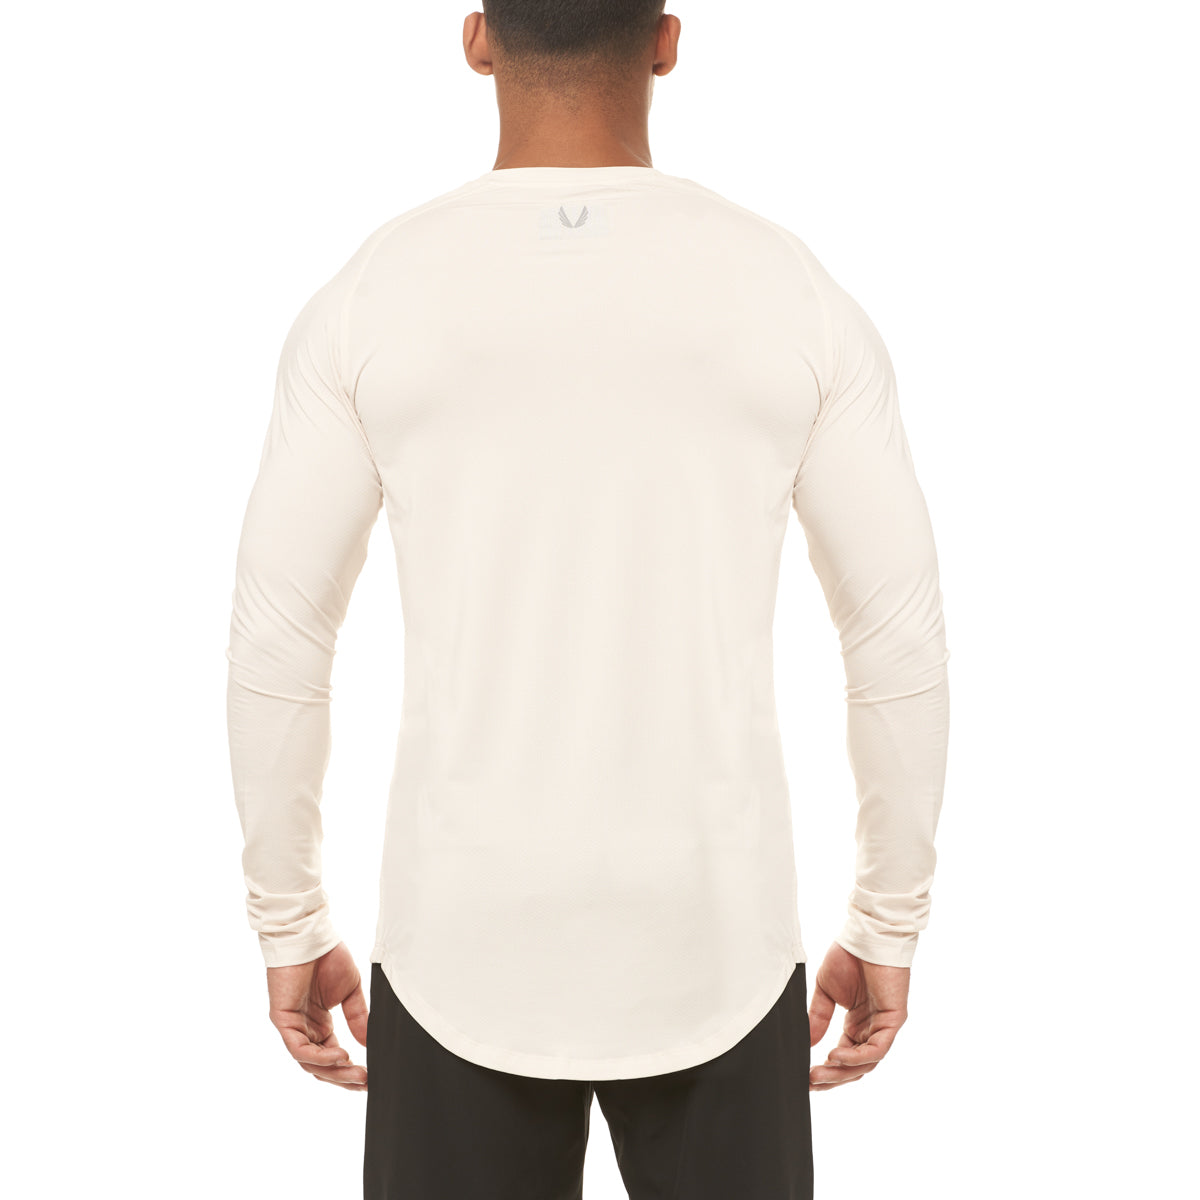 0149. Silver-Lite® Long Sleeve - Ivory Cream